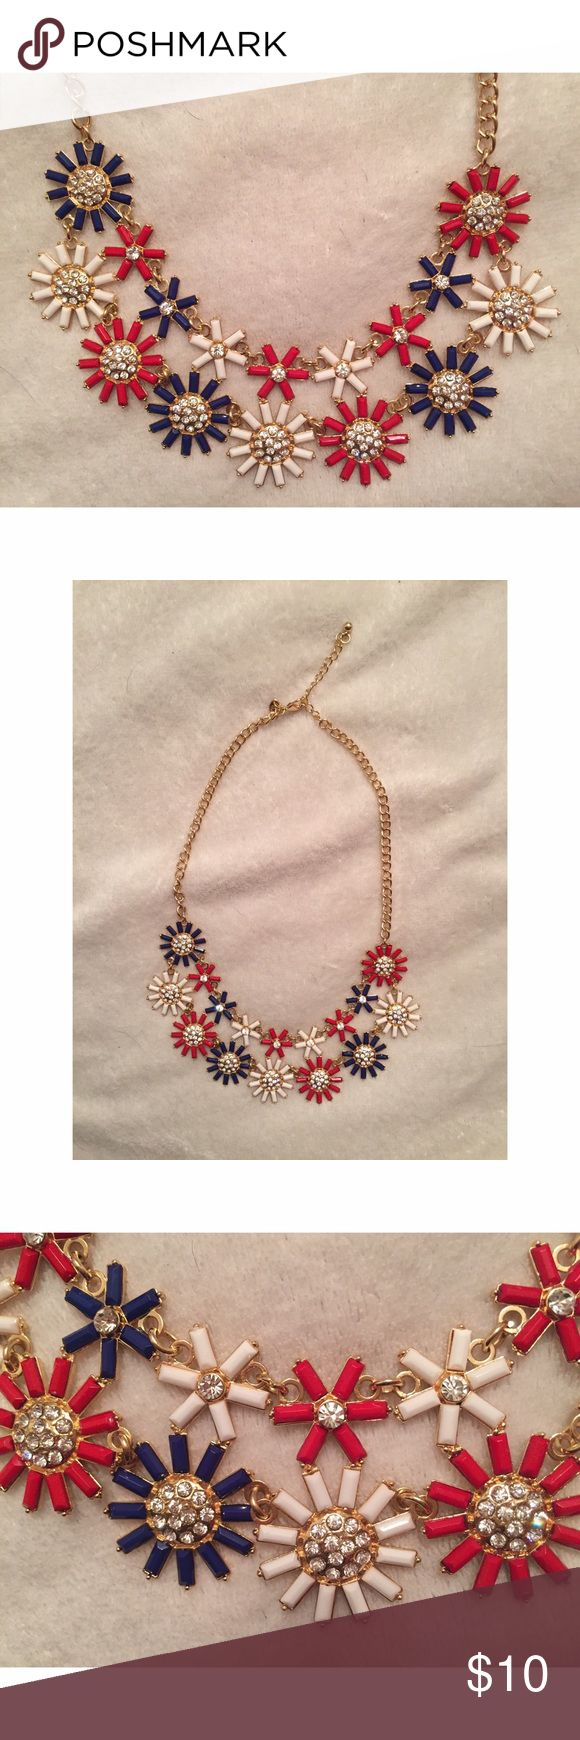 Charming Charlie Statement Necklace Red, white & blue statement necklace from Charming Charlie. Worn once Charming Charlie Jewelry Necklaces